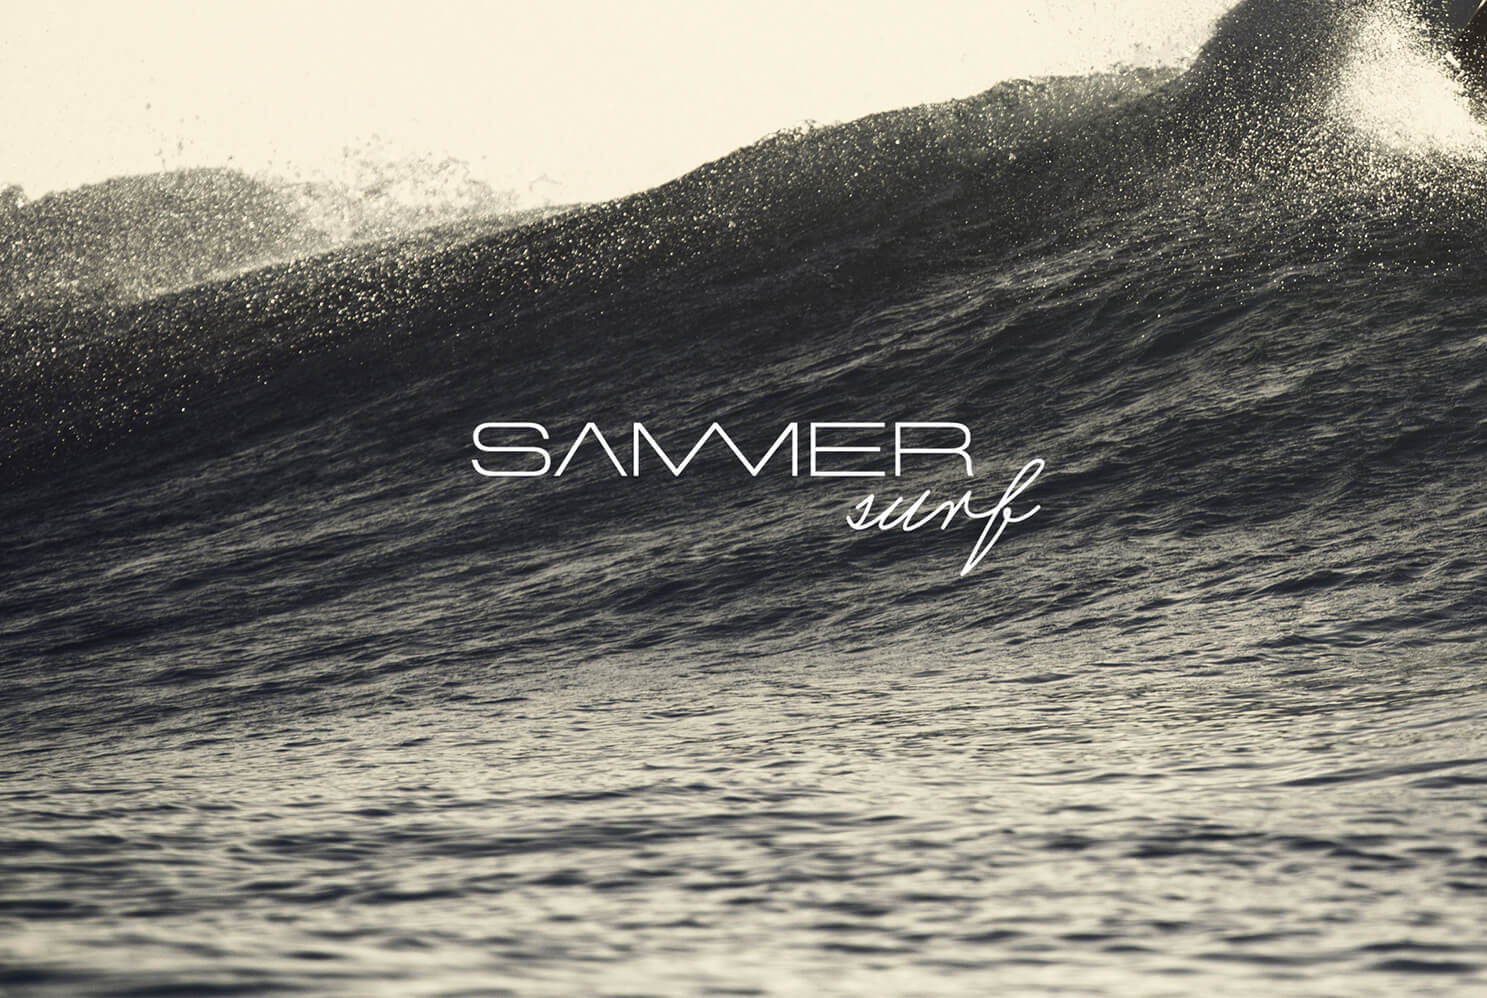 sammersurf, Branding, SUP, Fanatic, surfen, Logo, Image, Chris Sammer, Corporate Design, Folder, Magazin, Editorialdesign, Typografies